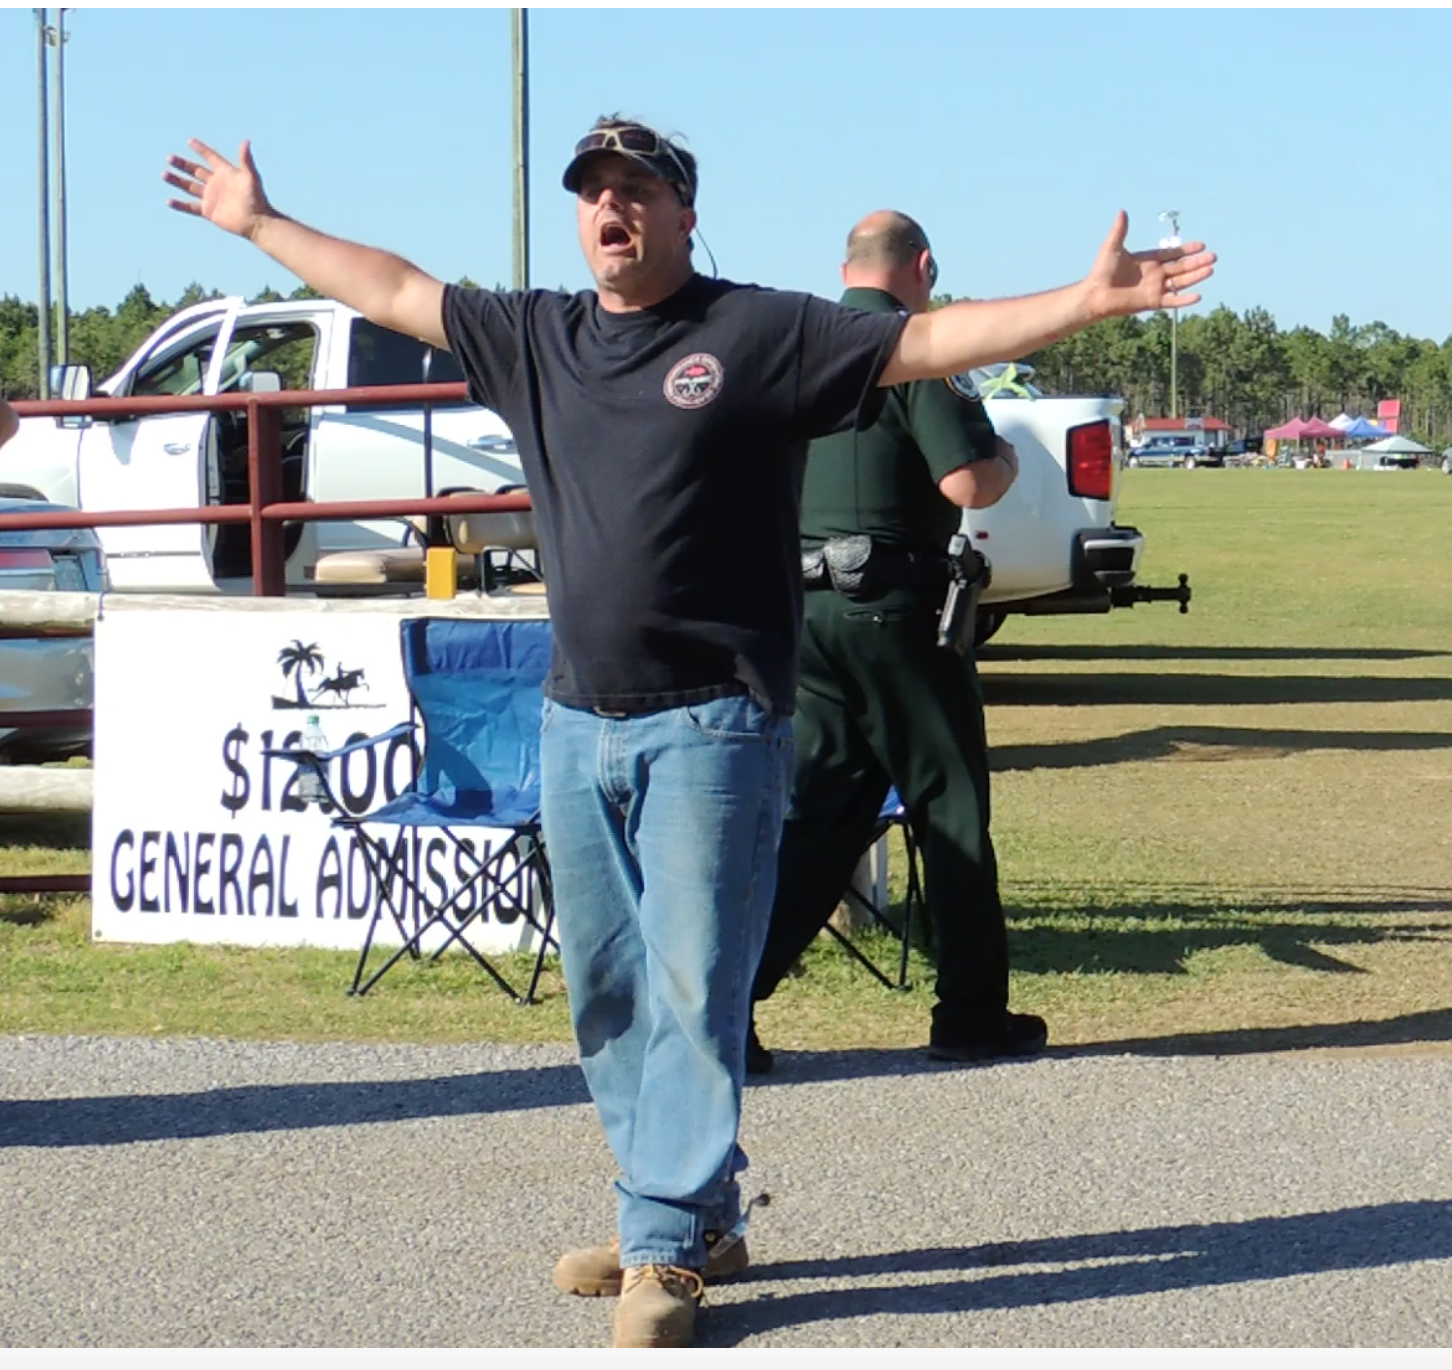 Mr. Todd Fisher, Horse Show Official, Panama City Beach, FL